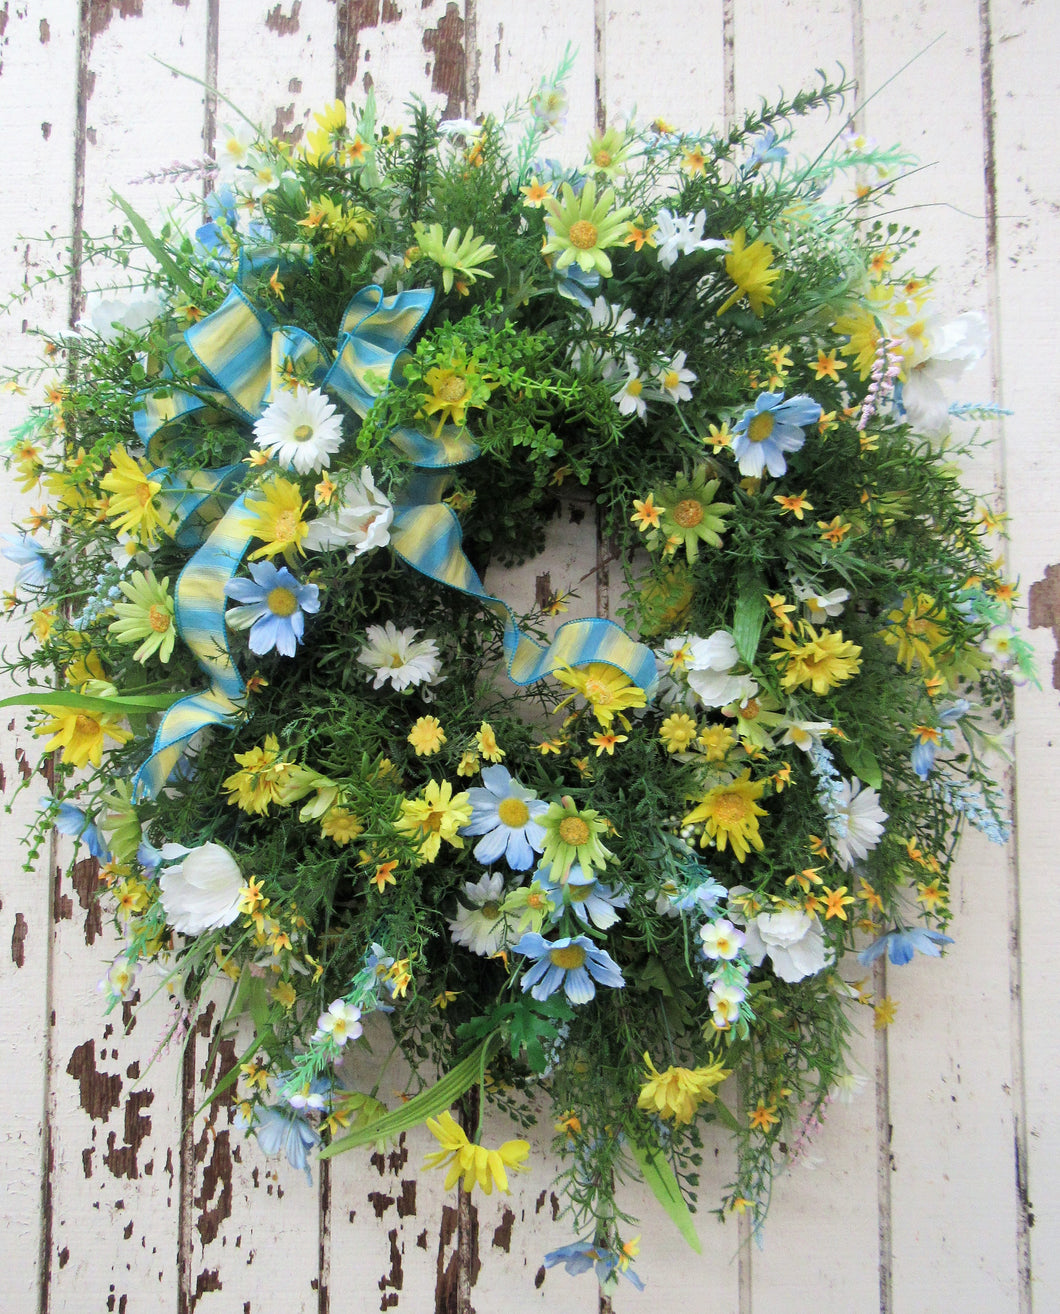 Gallery/Ver62 - April's Garden Wreath